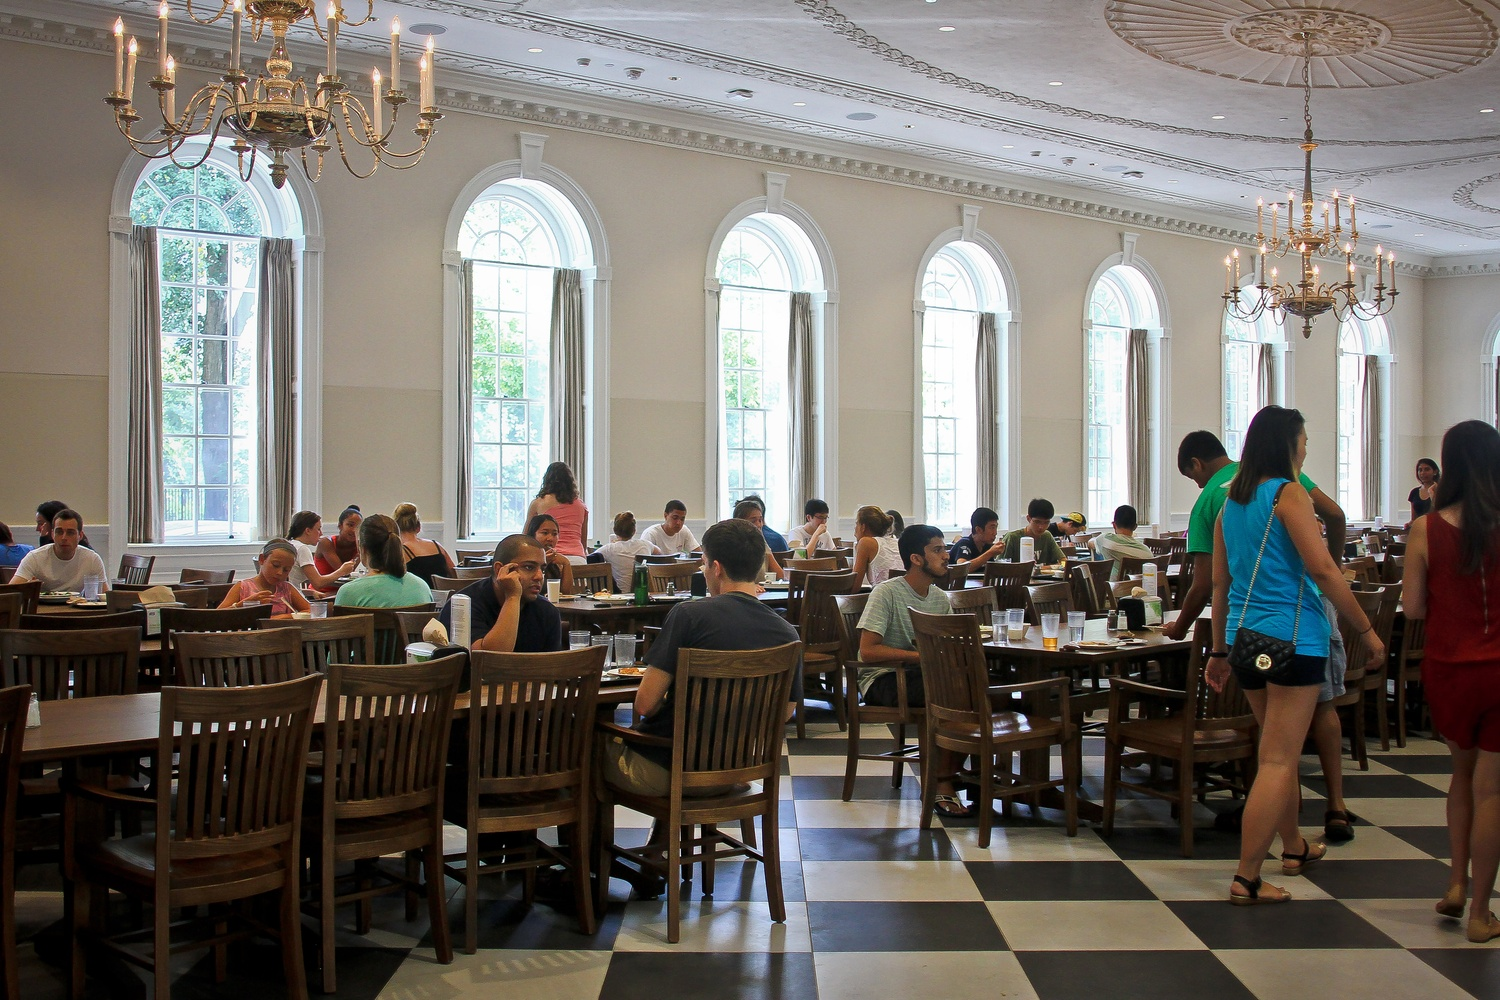 Mckinlock renovations draw praise from leverett community for House dining hall images